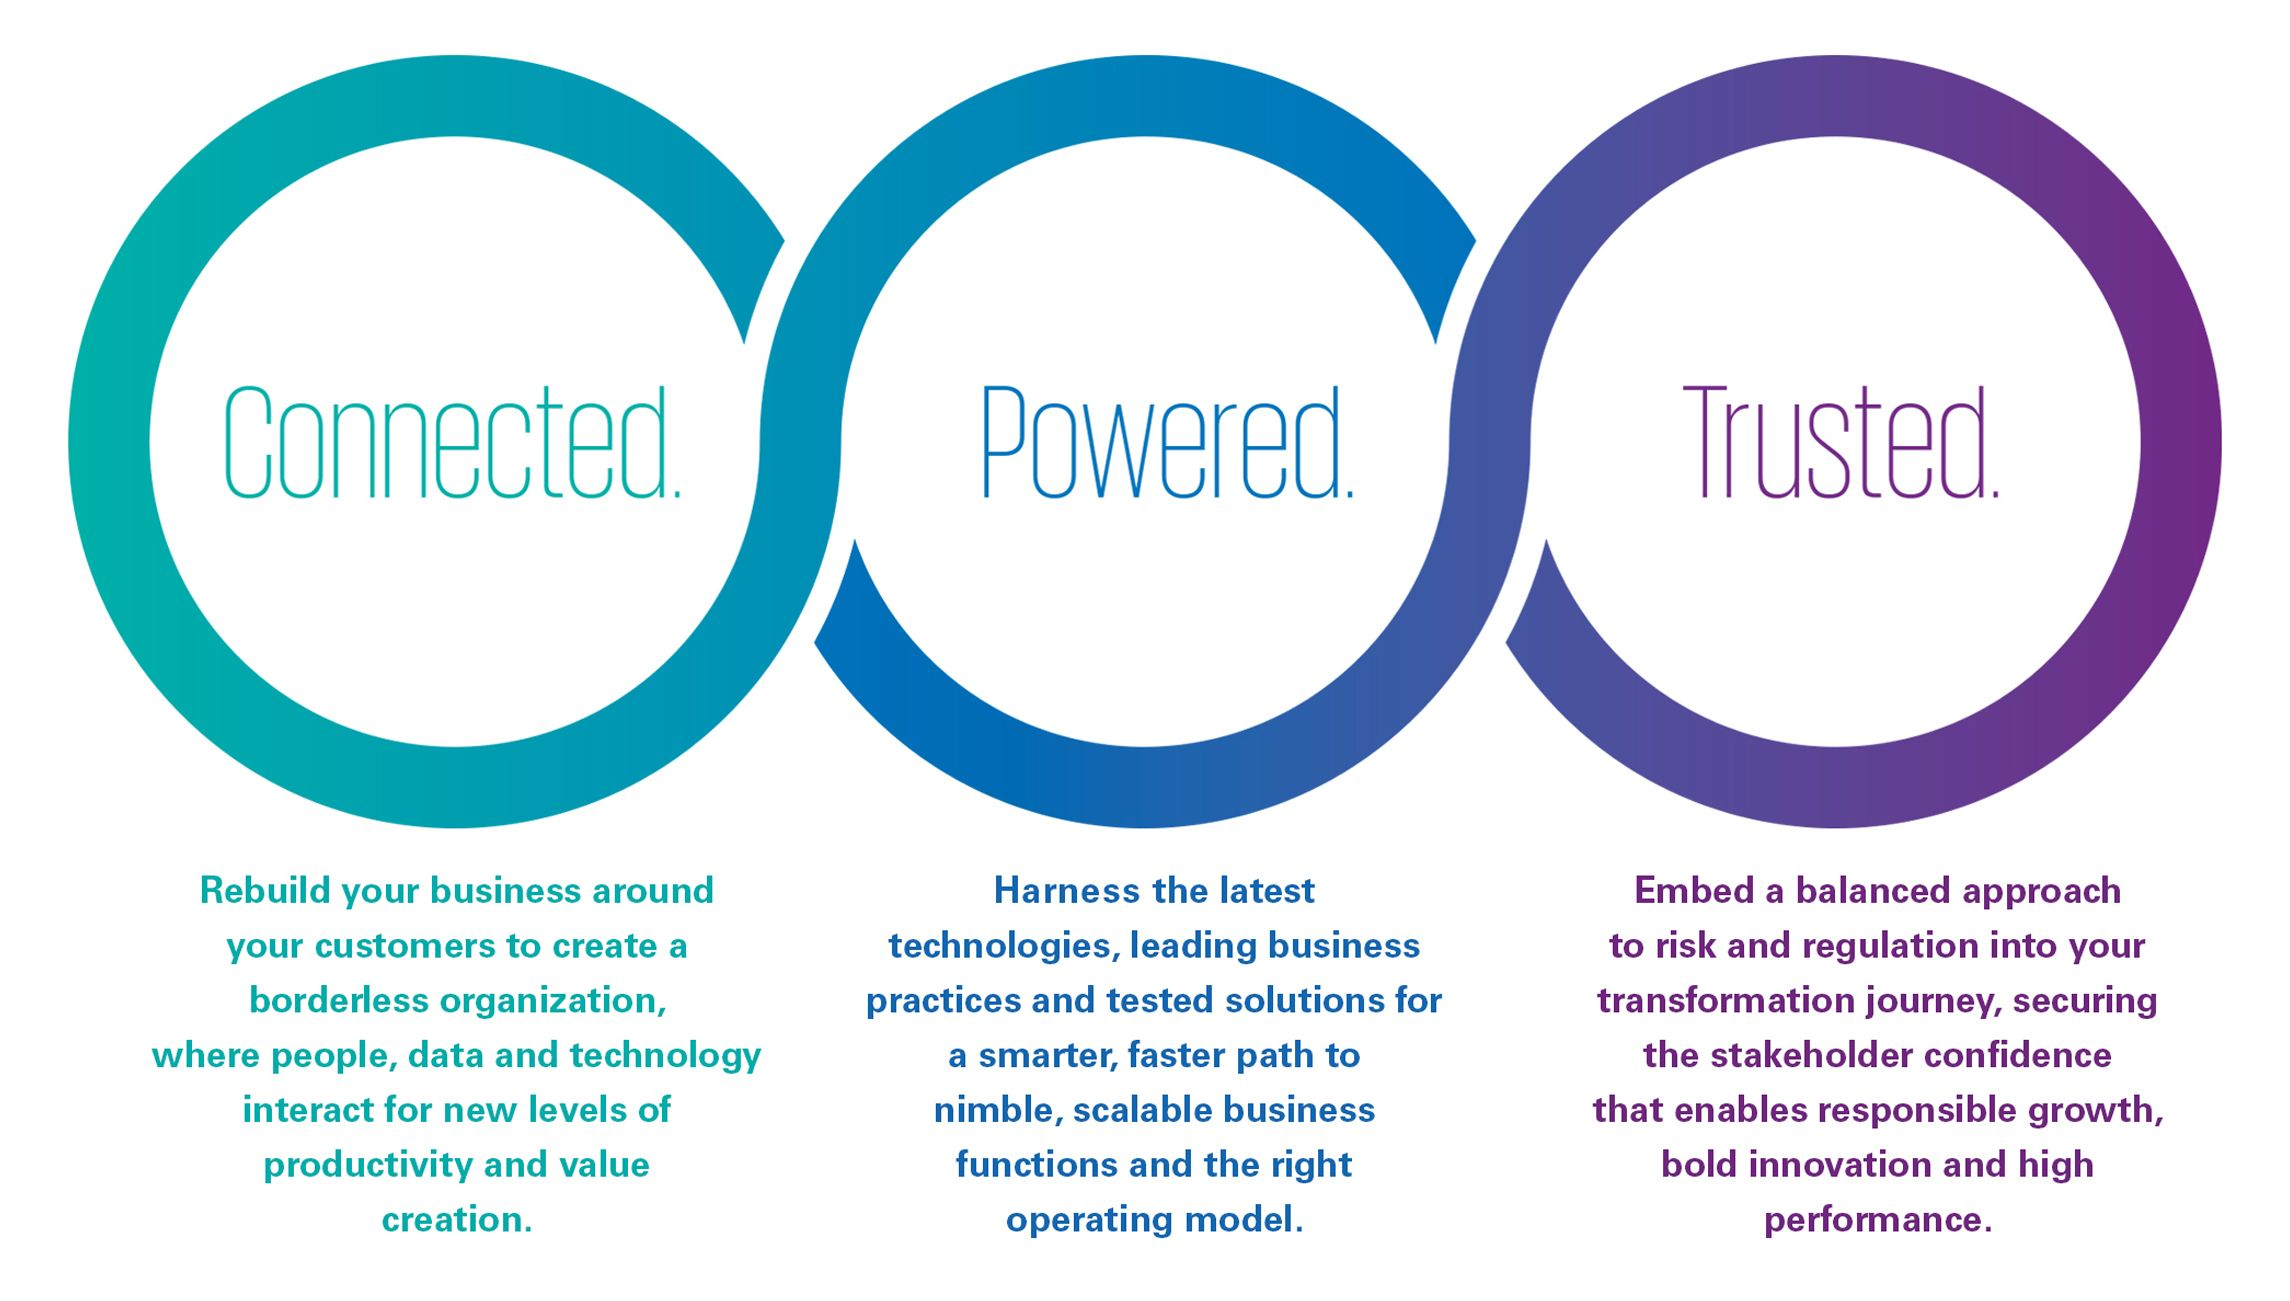 Connected. Powered. Trust. graphic